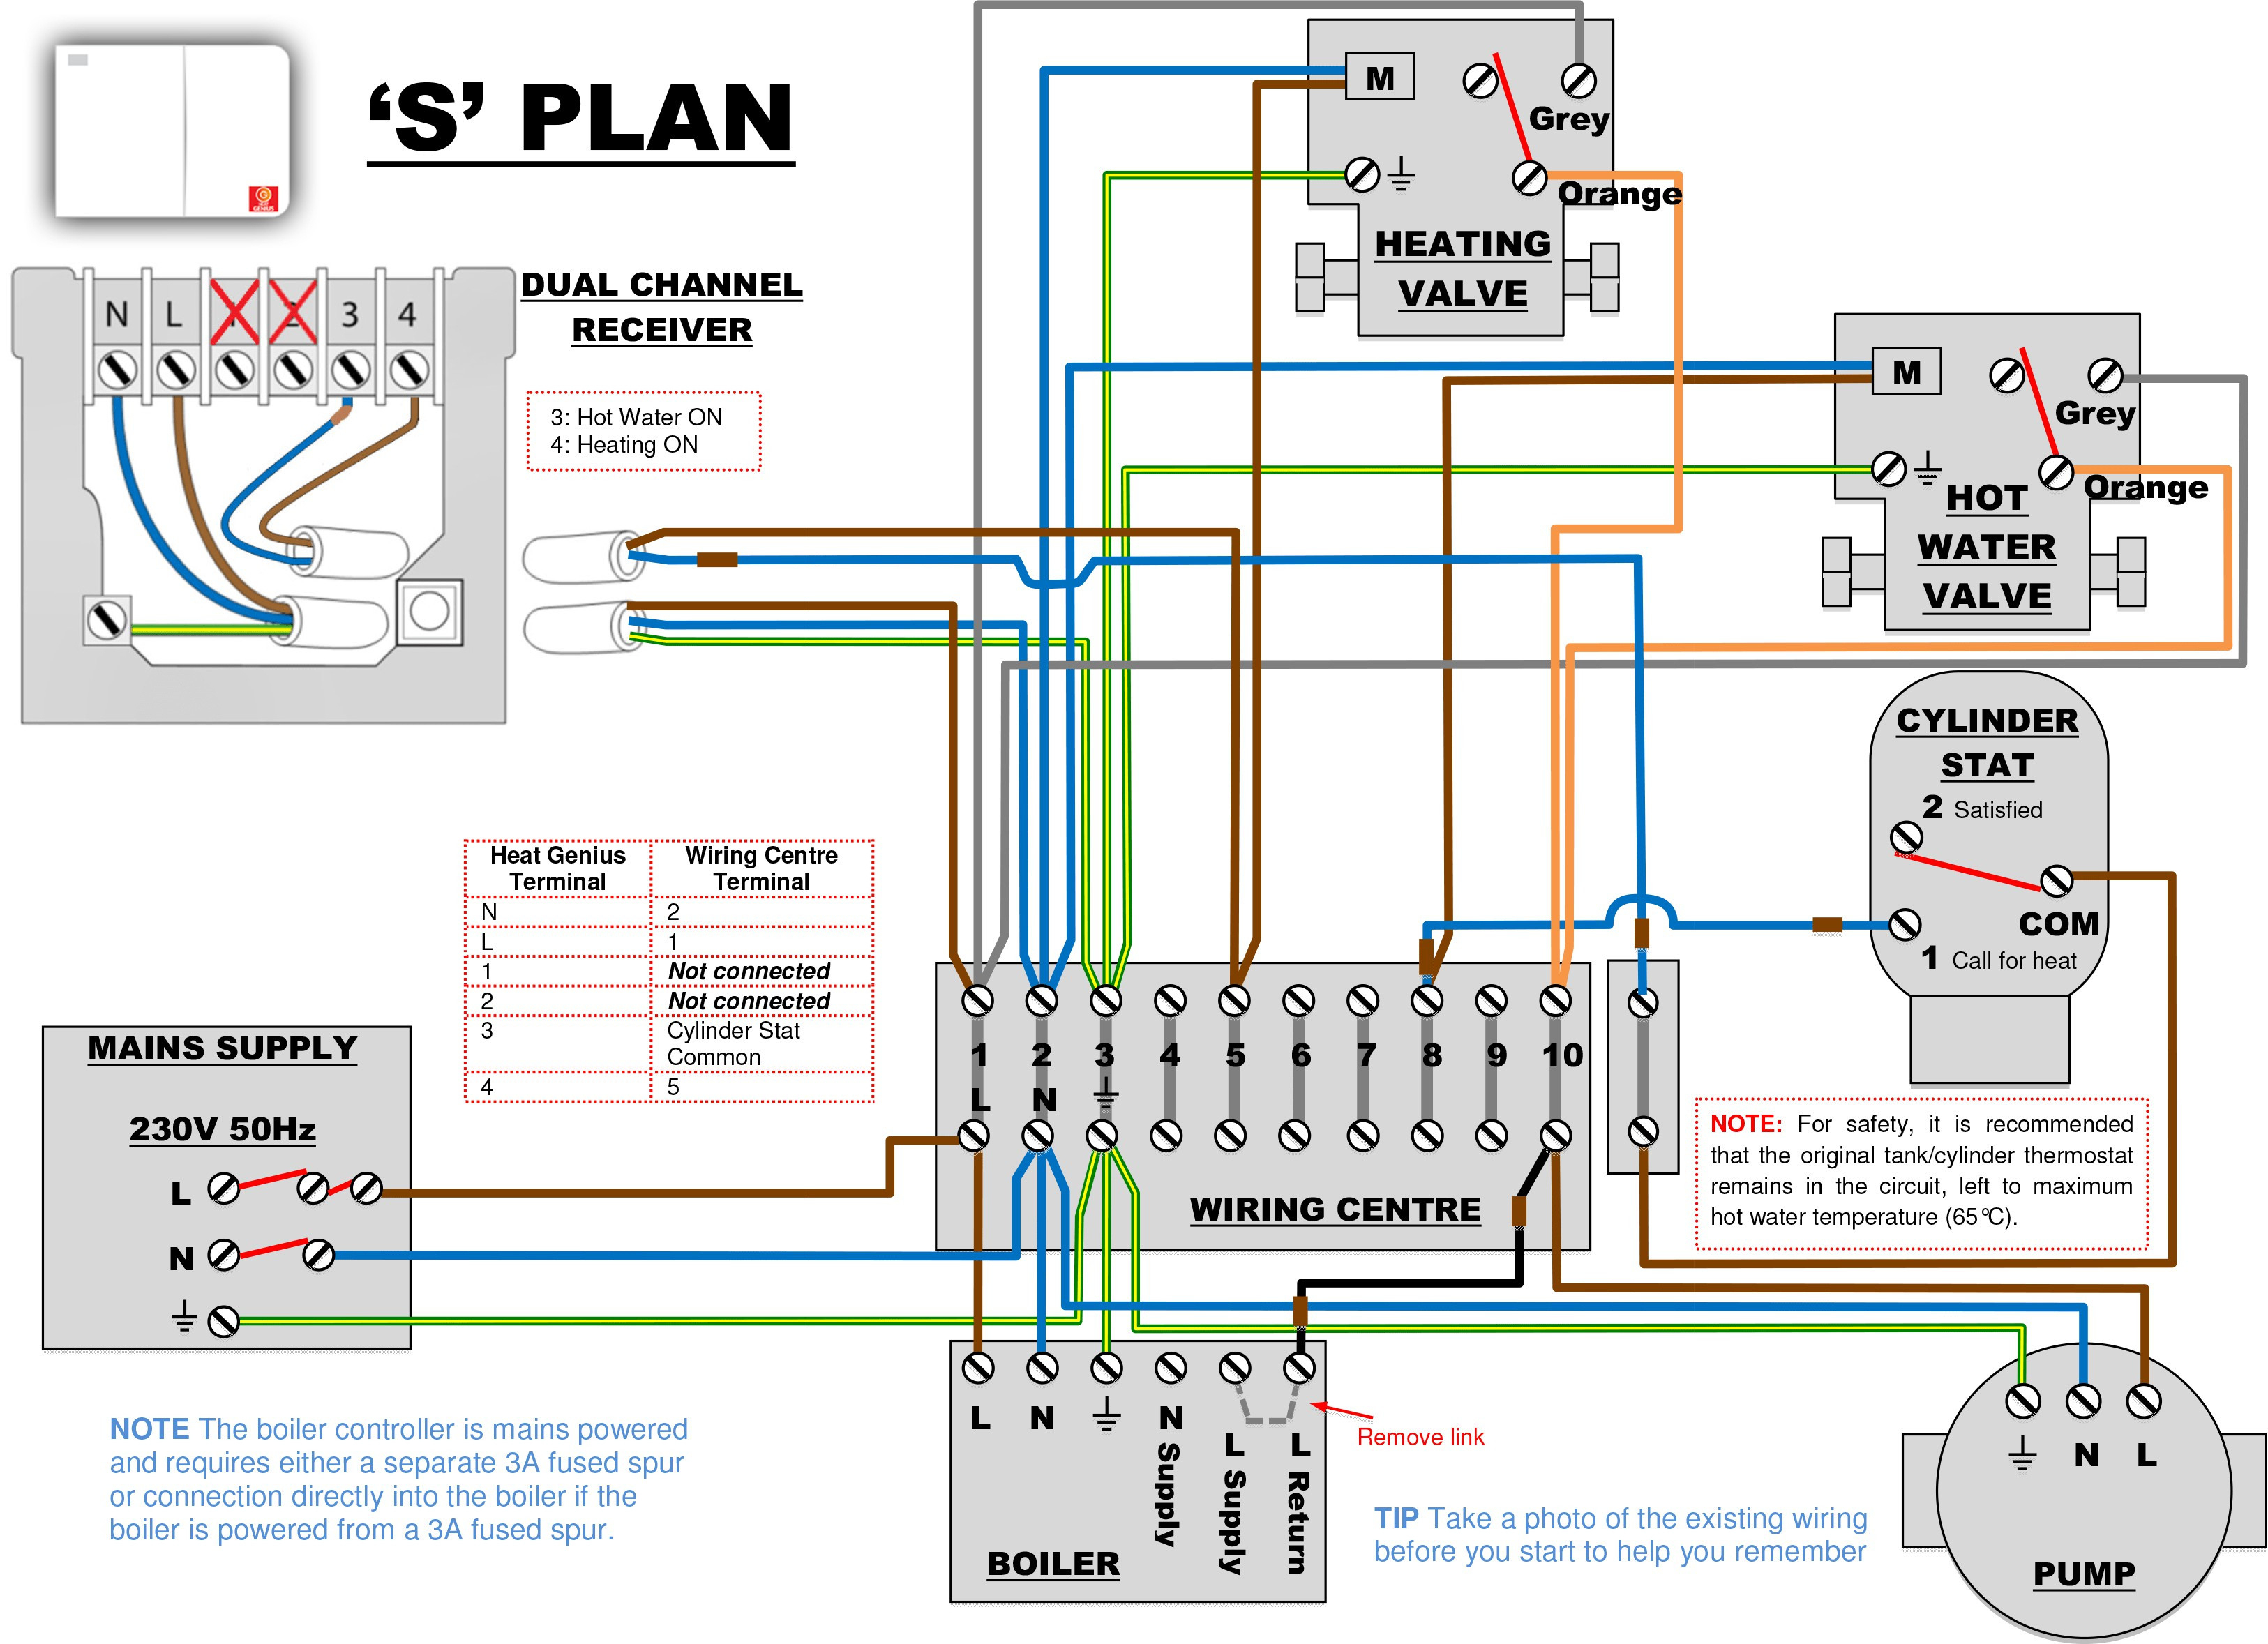 The Nest Wiring Diagram | Manual E-Books - Nest Wiring Diagram